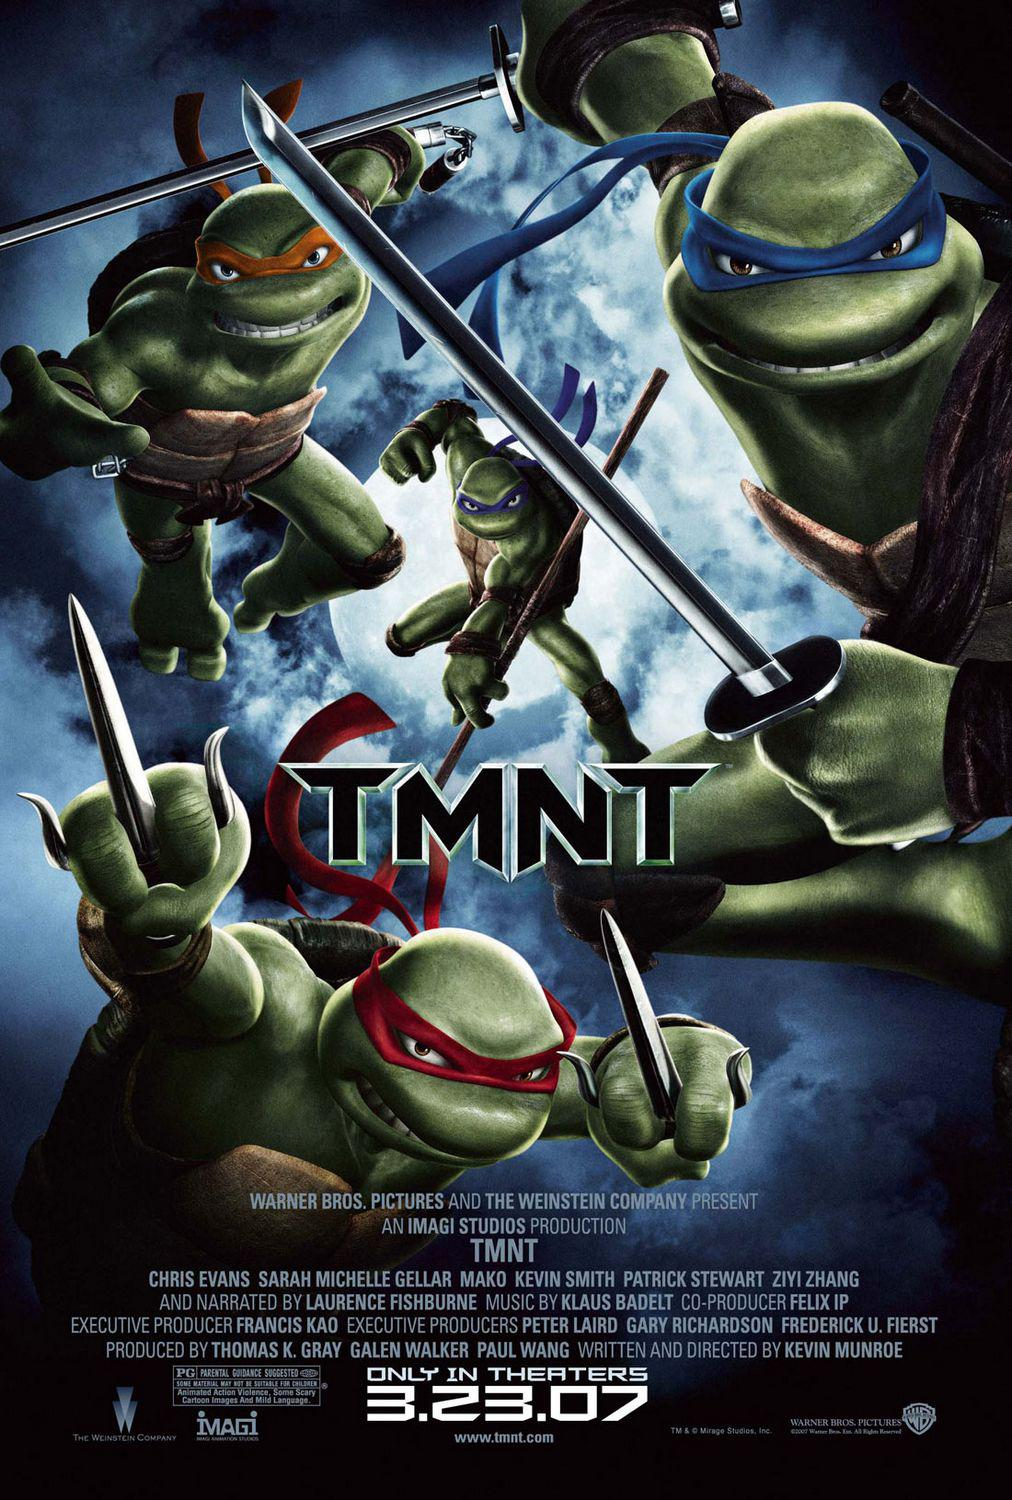 TMNT - Teenage Mutant Ninja Turtles 3 (2007)